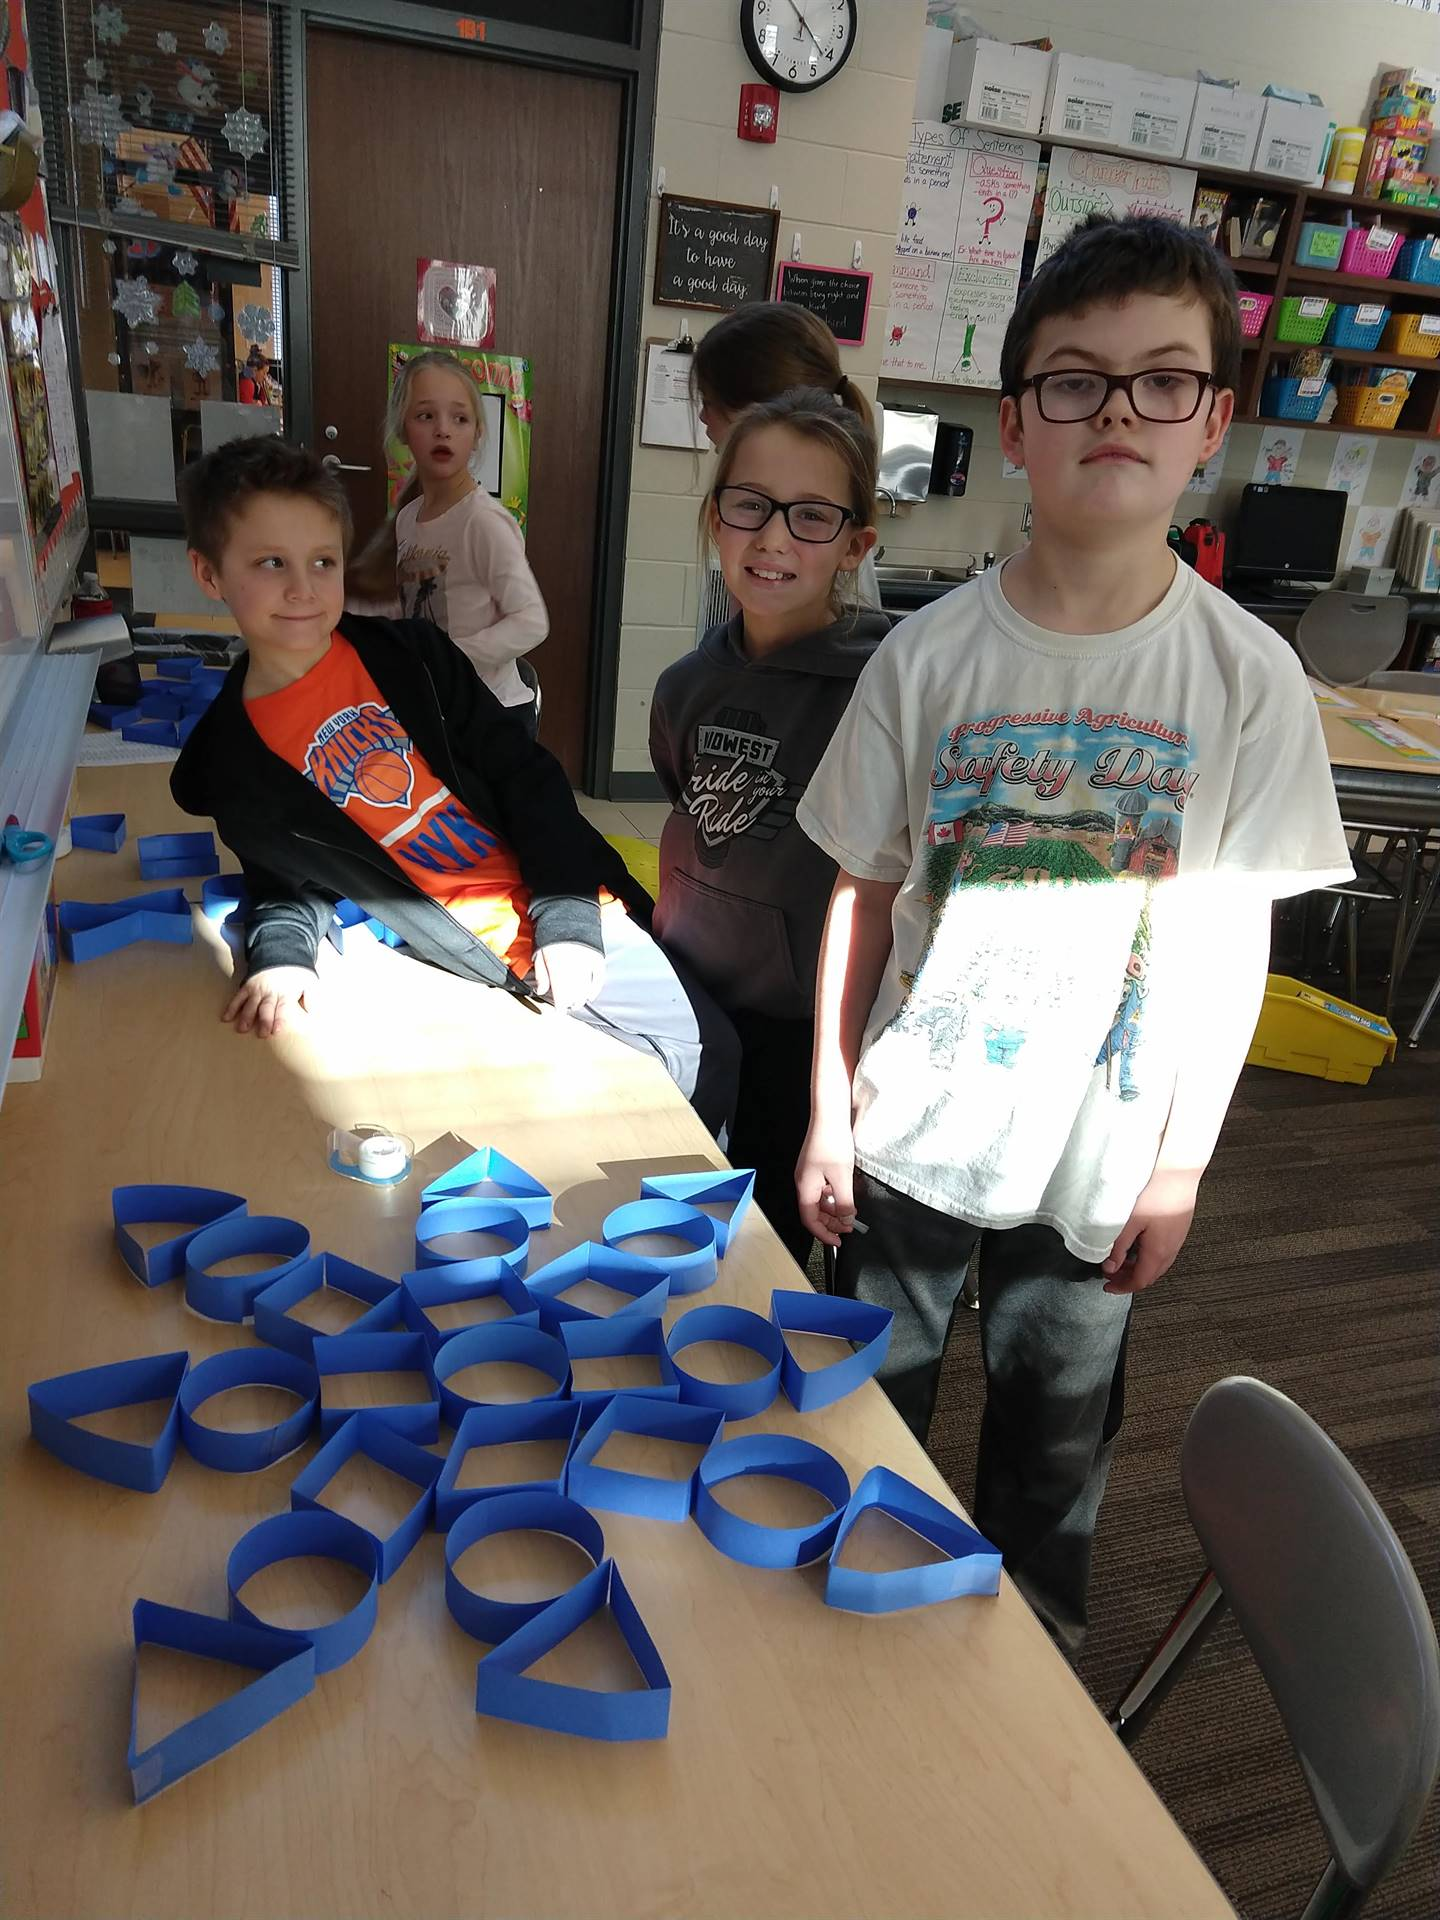 Students showing a paper creation.